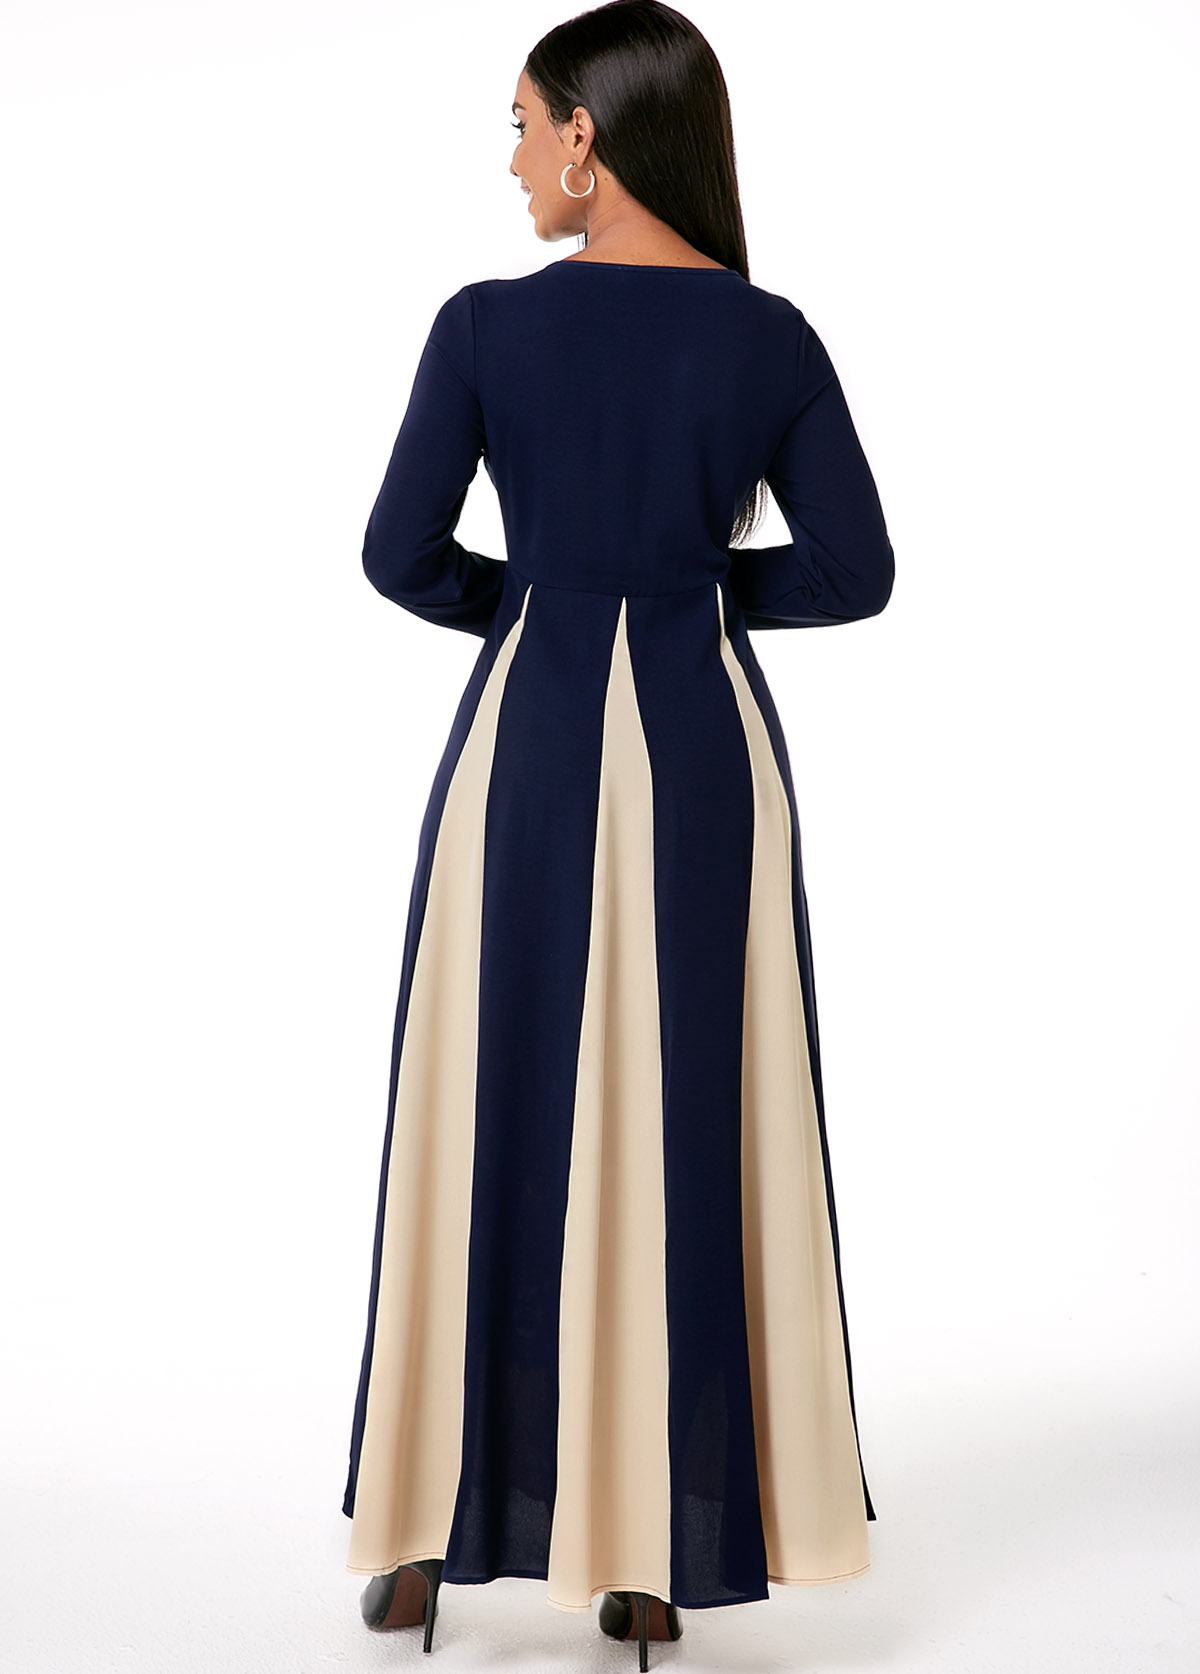 Embroidered Round Neck Long Sleeve Contrast Dress